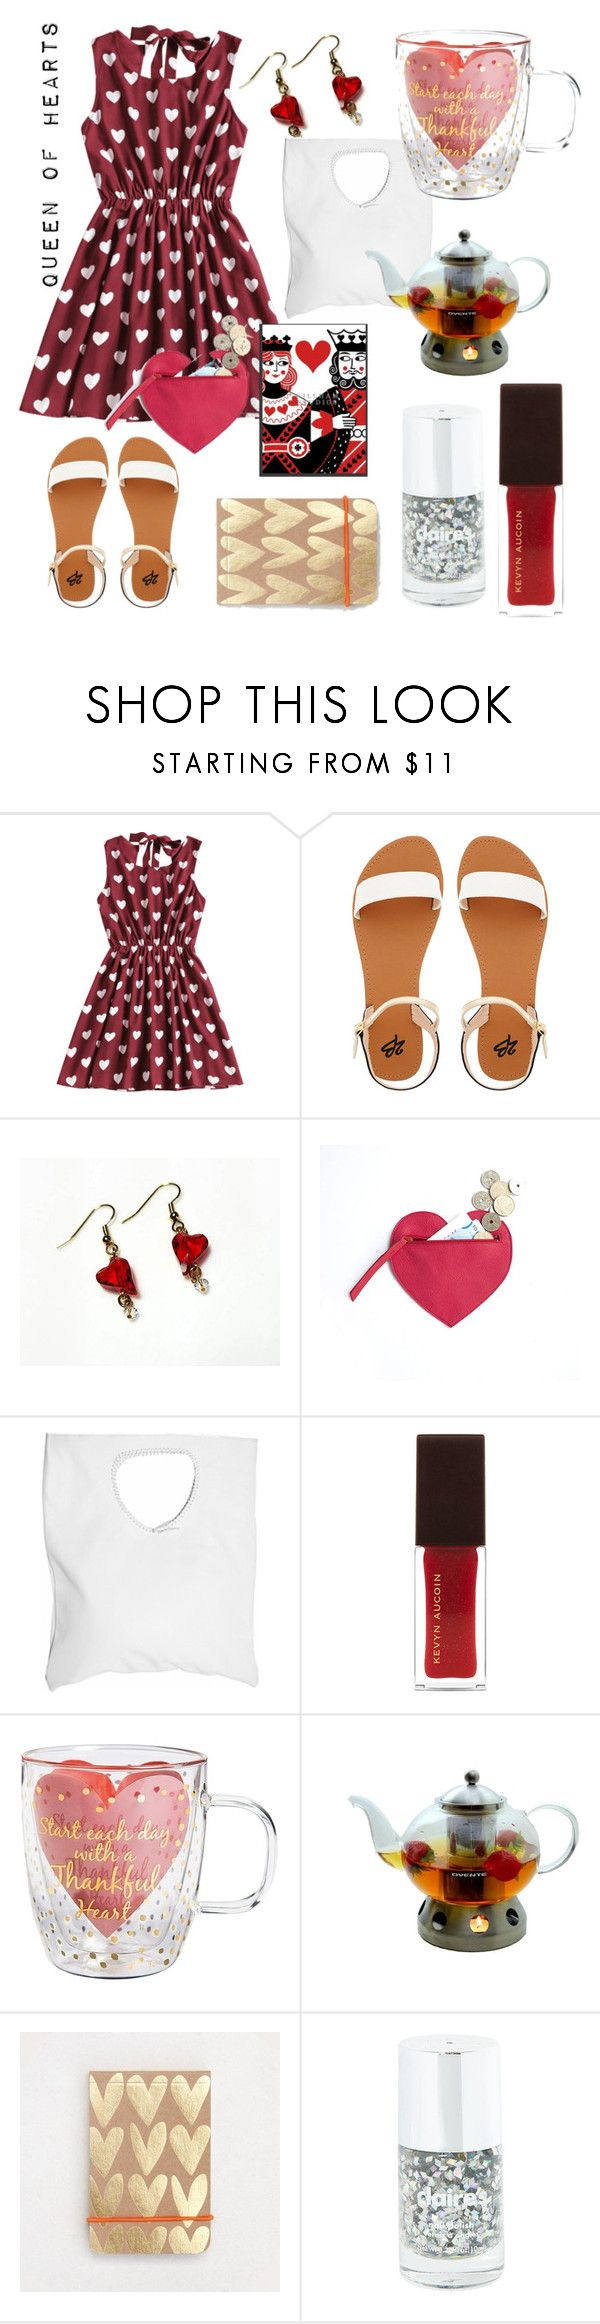 """""""Queen of hearts"""" by tinakriss ❤ liked on Polyvore featuring 2b bebe, Jennifer Haley, Kevyn Aucoin, Cypress Home and Ovente"""